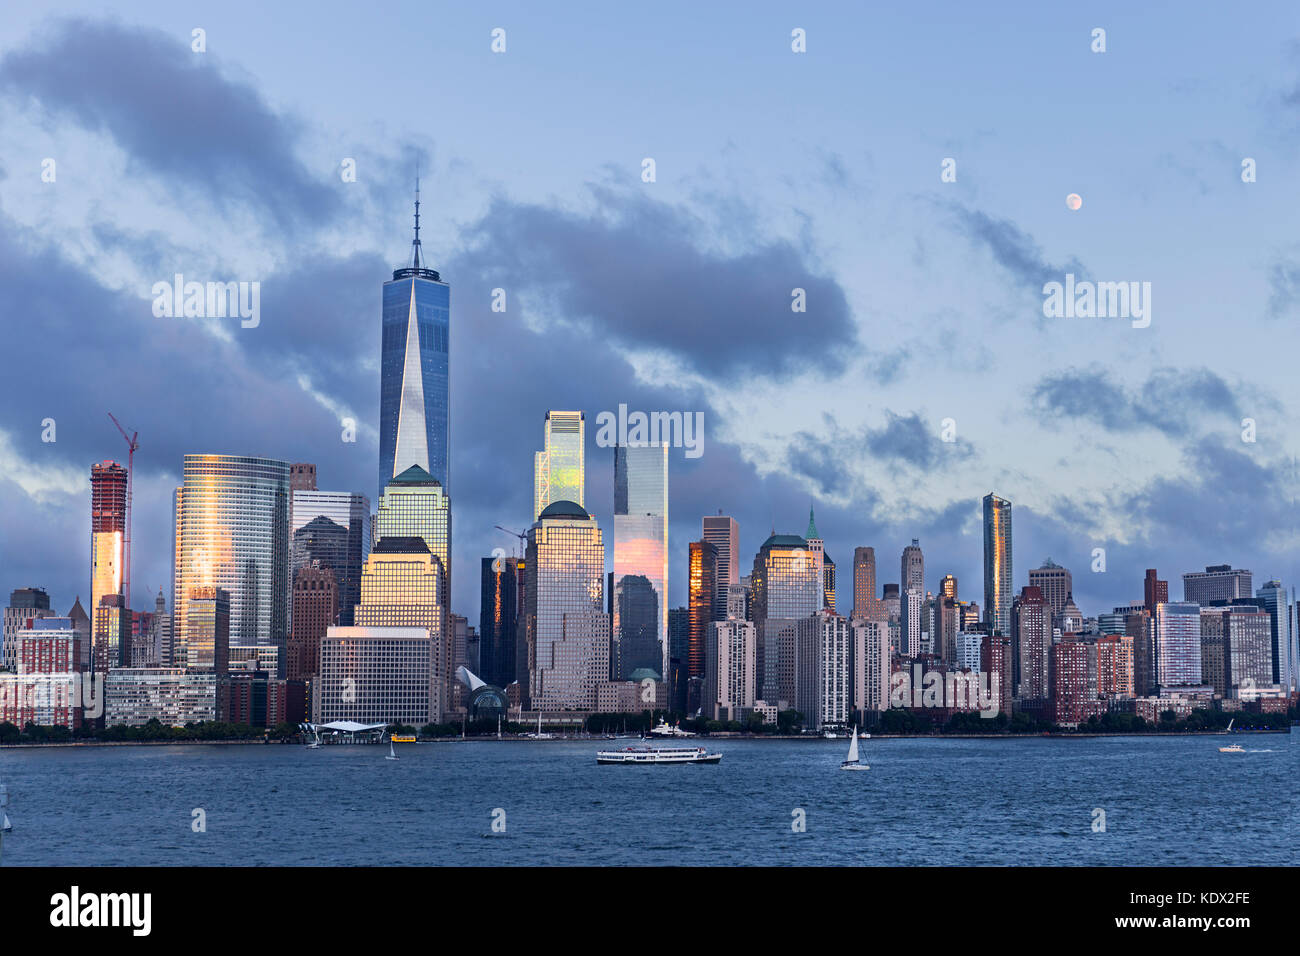 Lower Manhattan Skyline and moon rising at blue hour, NYC, USA - Stock Image